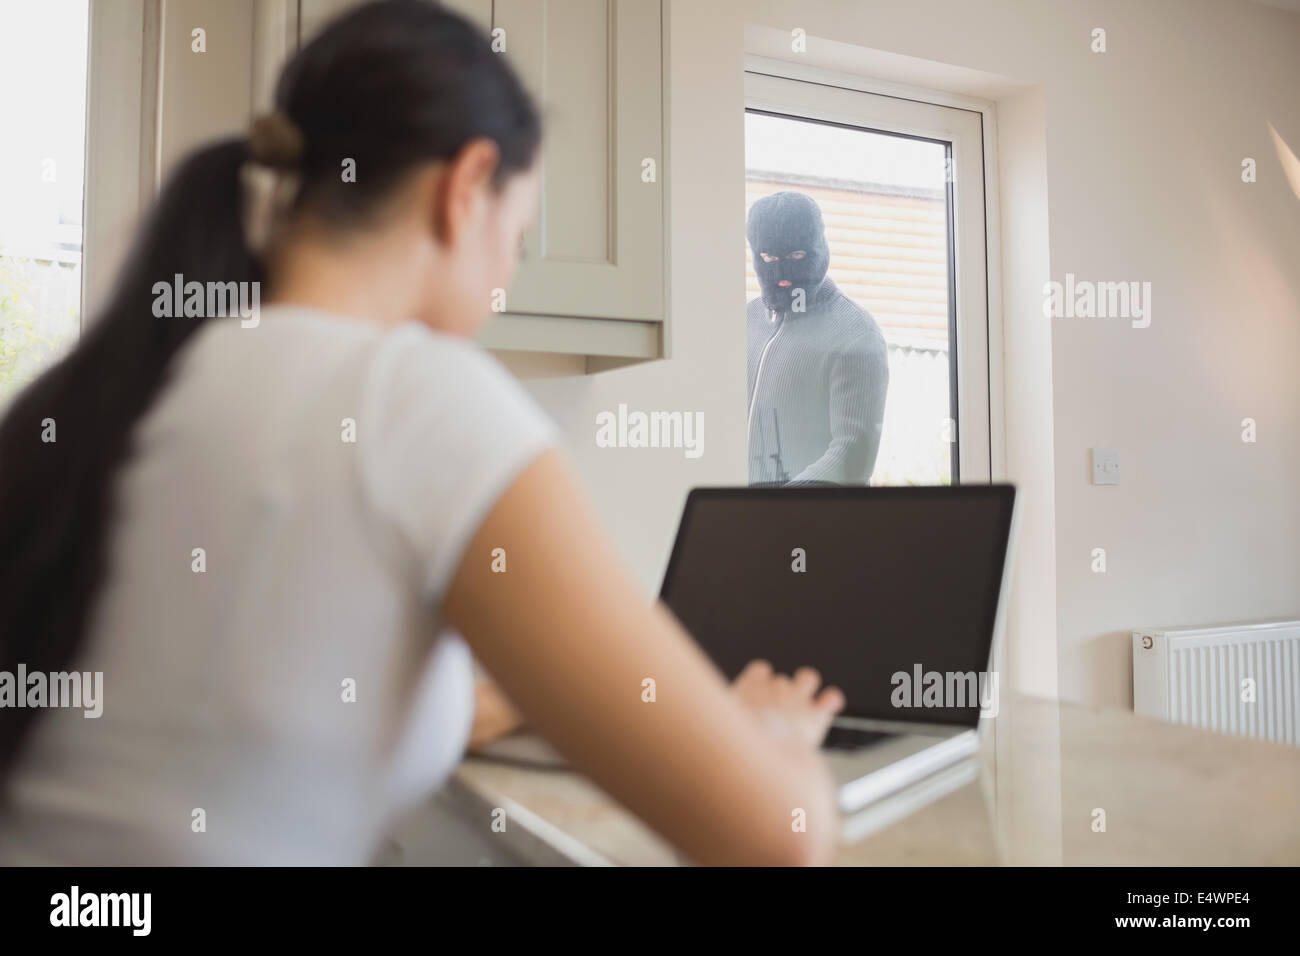 Burglar Looking Through Glass Door Stock Photos Burglar Looking